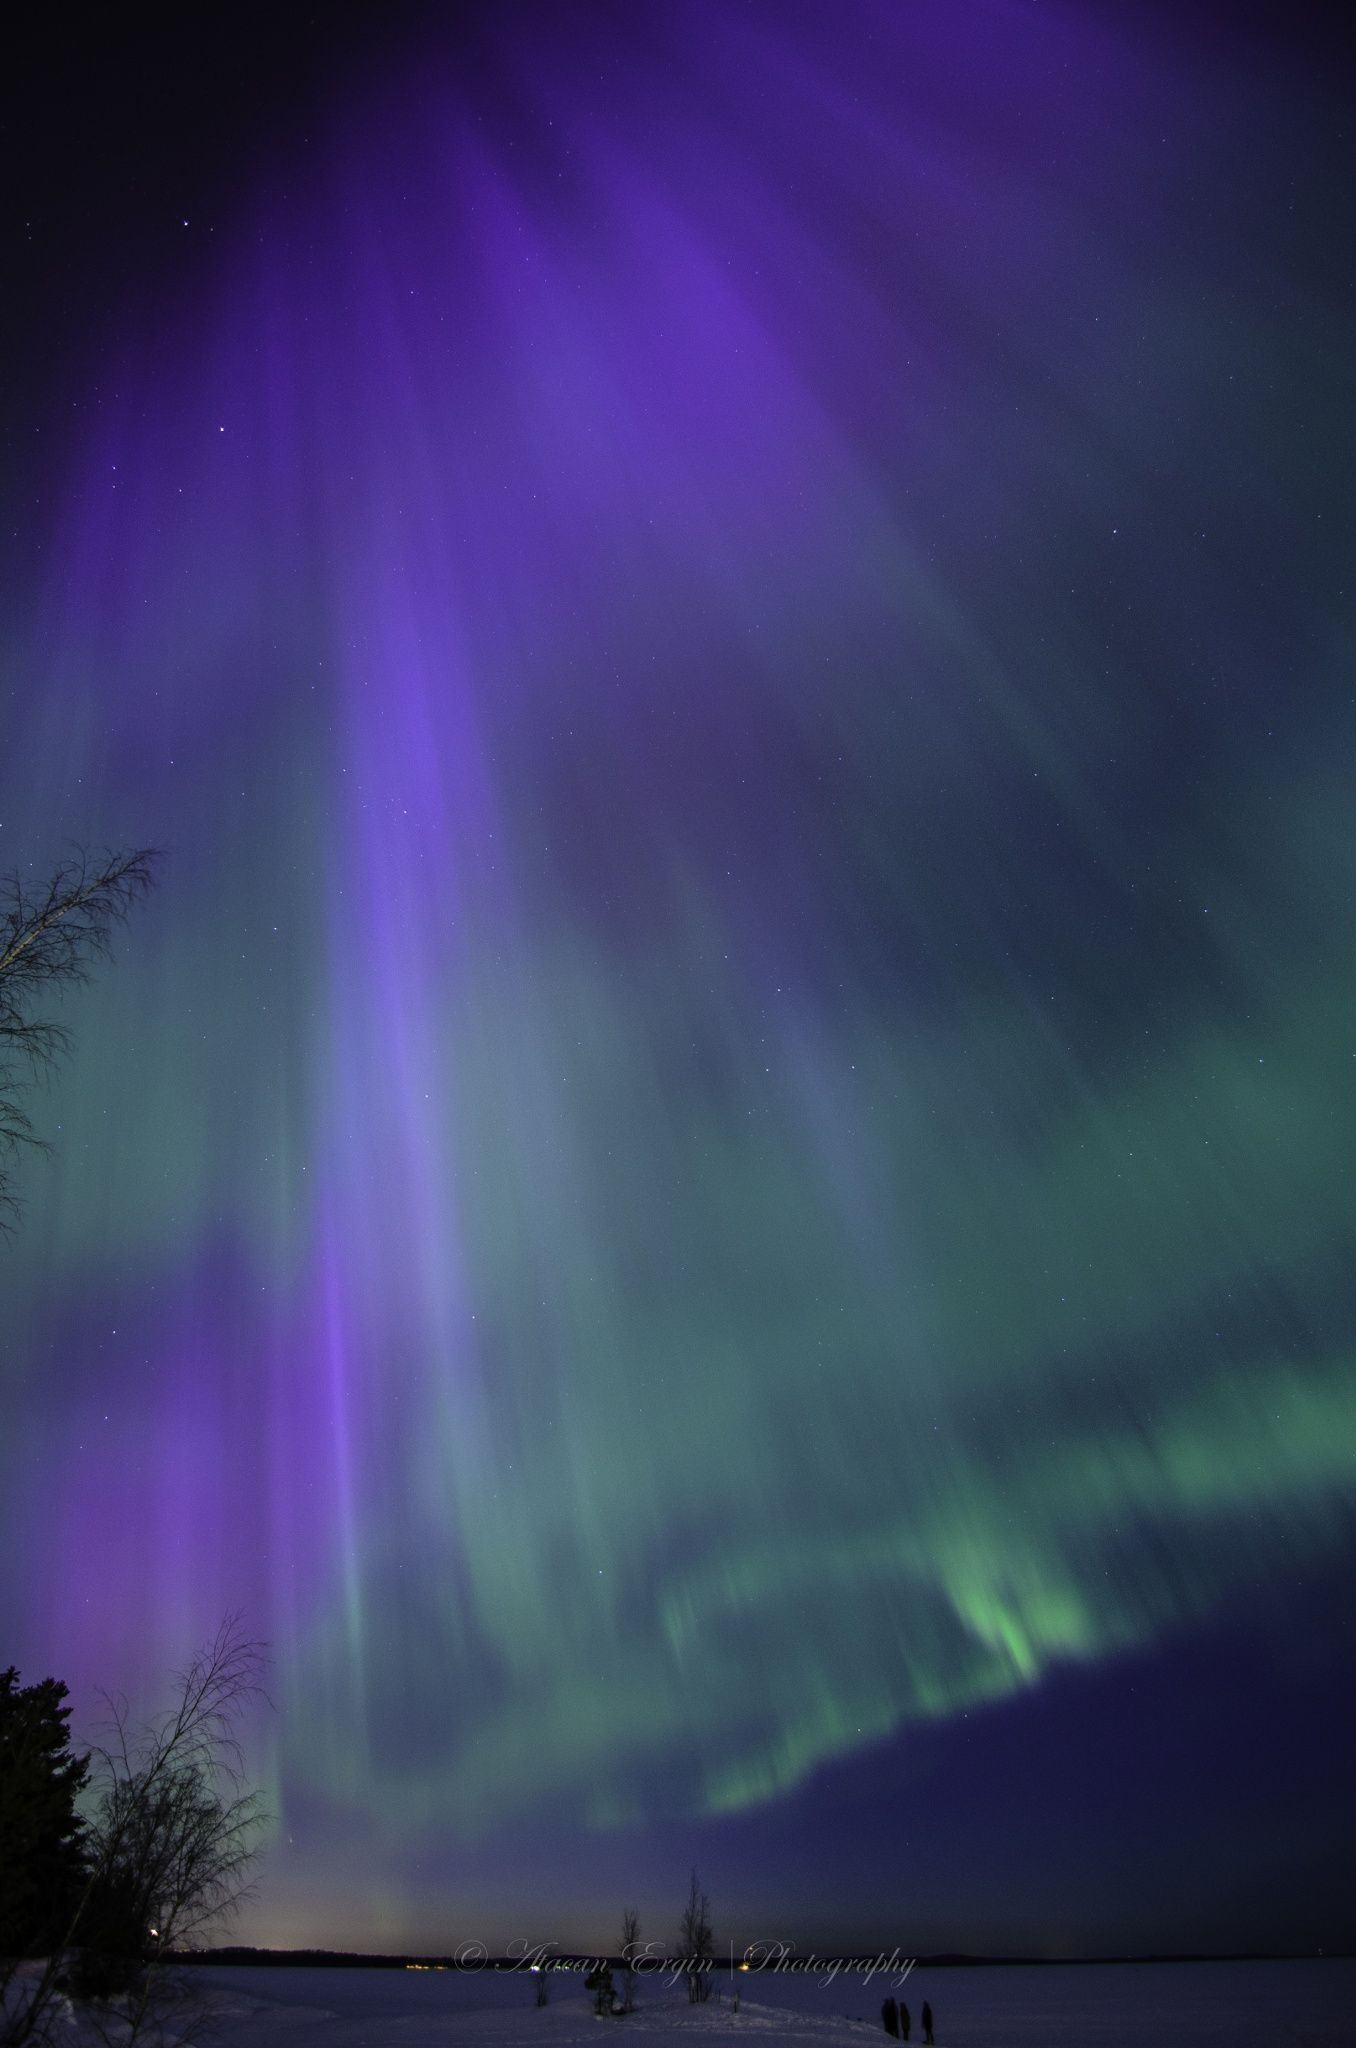 Northern lights tampere southern finland right after sunset by northern lights tampere southern finland right after sunset by atacan ergin on 500px malvernweather Images